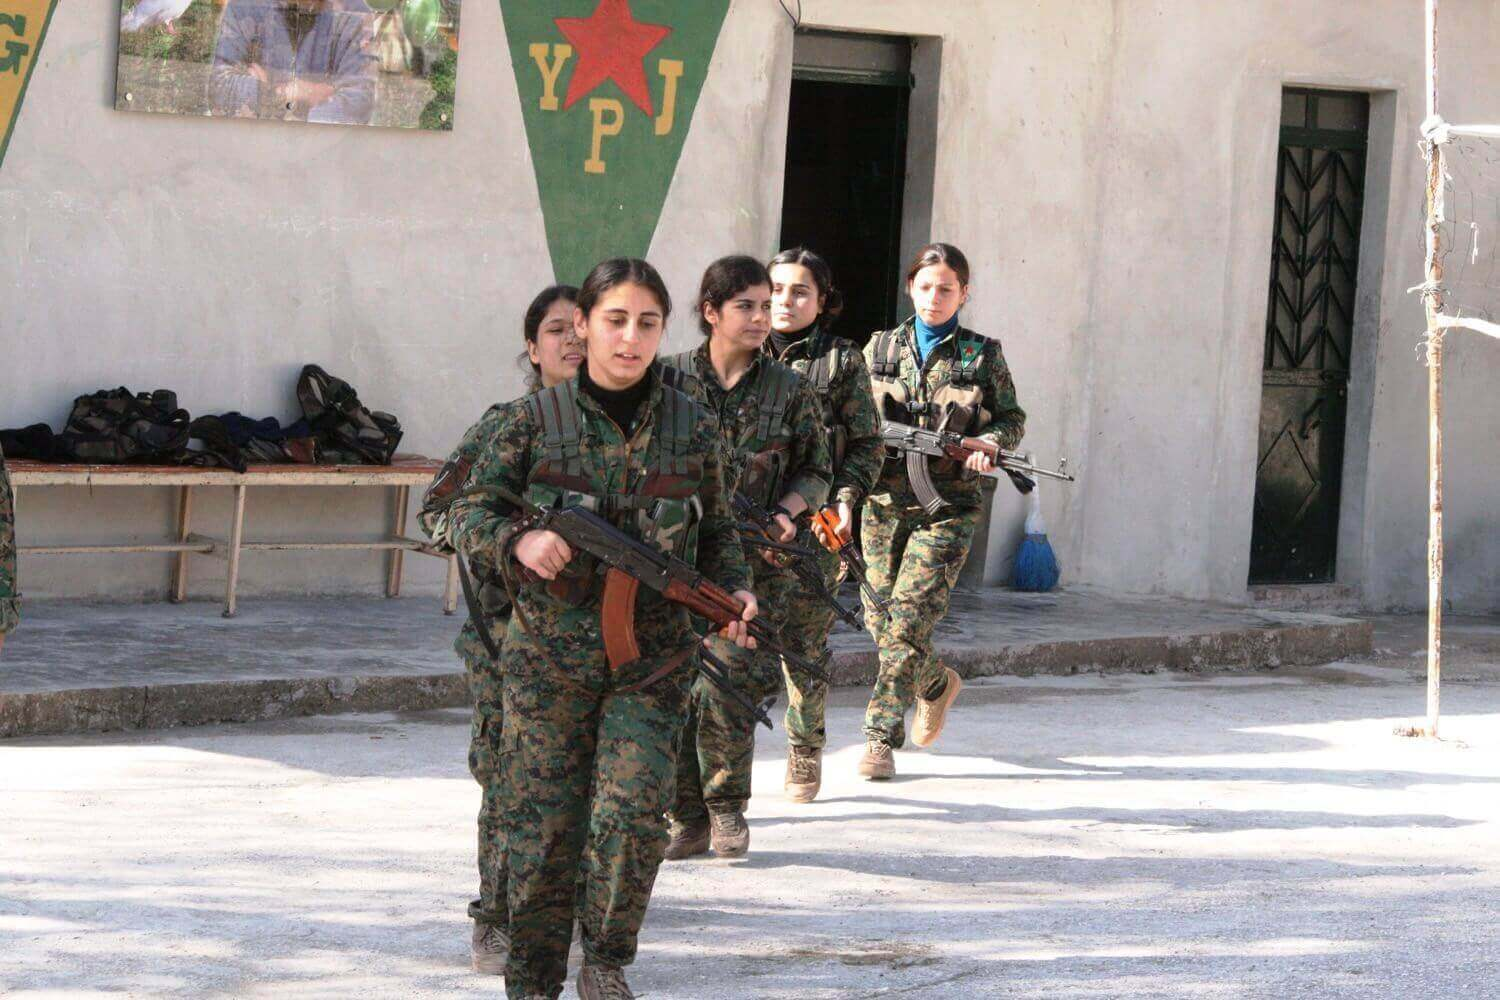 YPJ-Camp in the village of Katma Cantone Efrîn, February 3, 2015